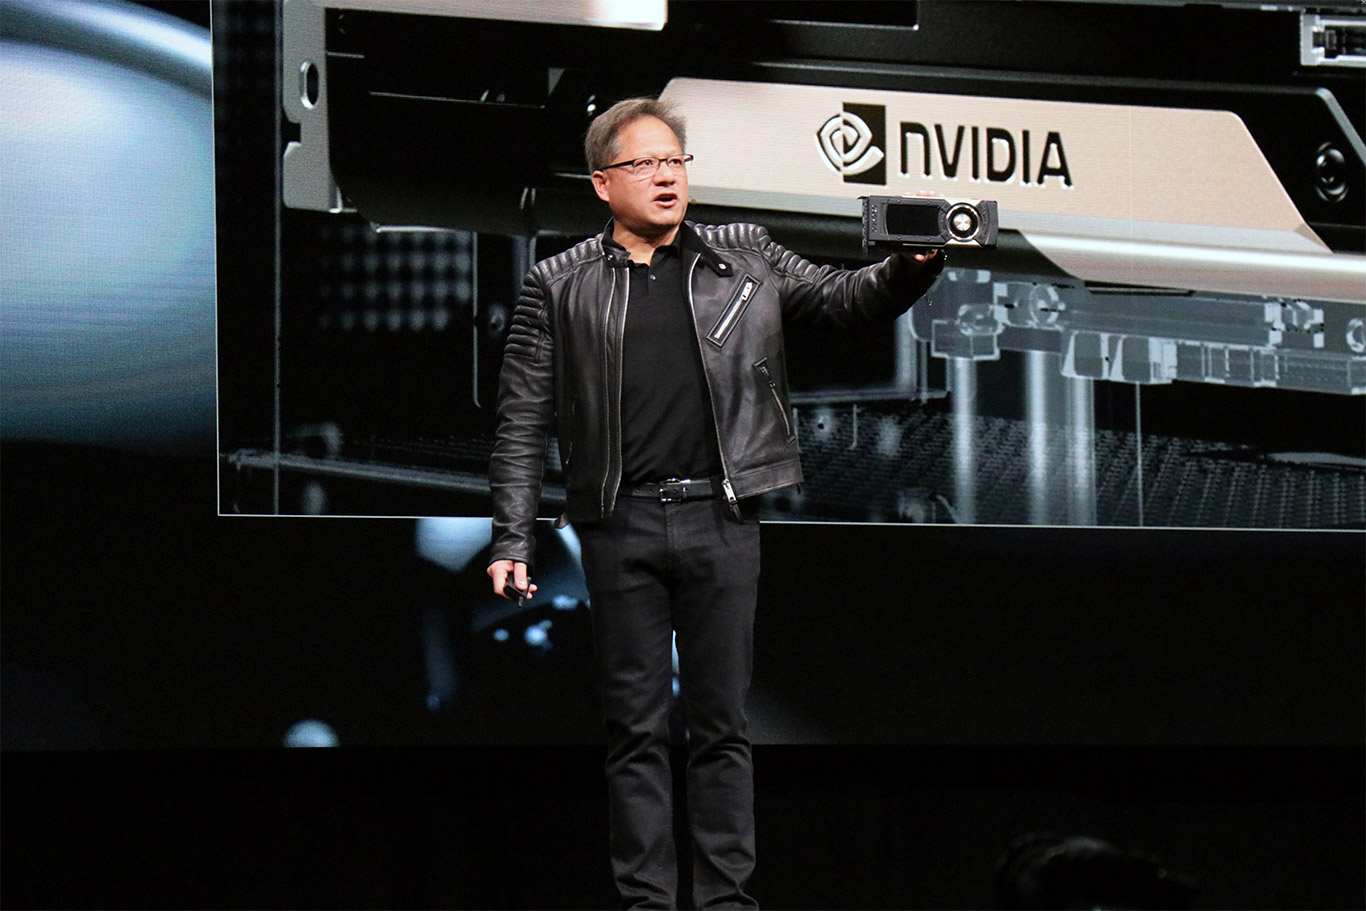 NVIDIA Announces Quadro GV100 Volta-Powered Graphics With RTX Real-Time Ray Tracing Wizardry (Updated)